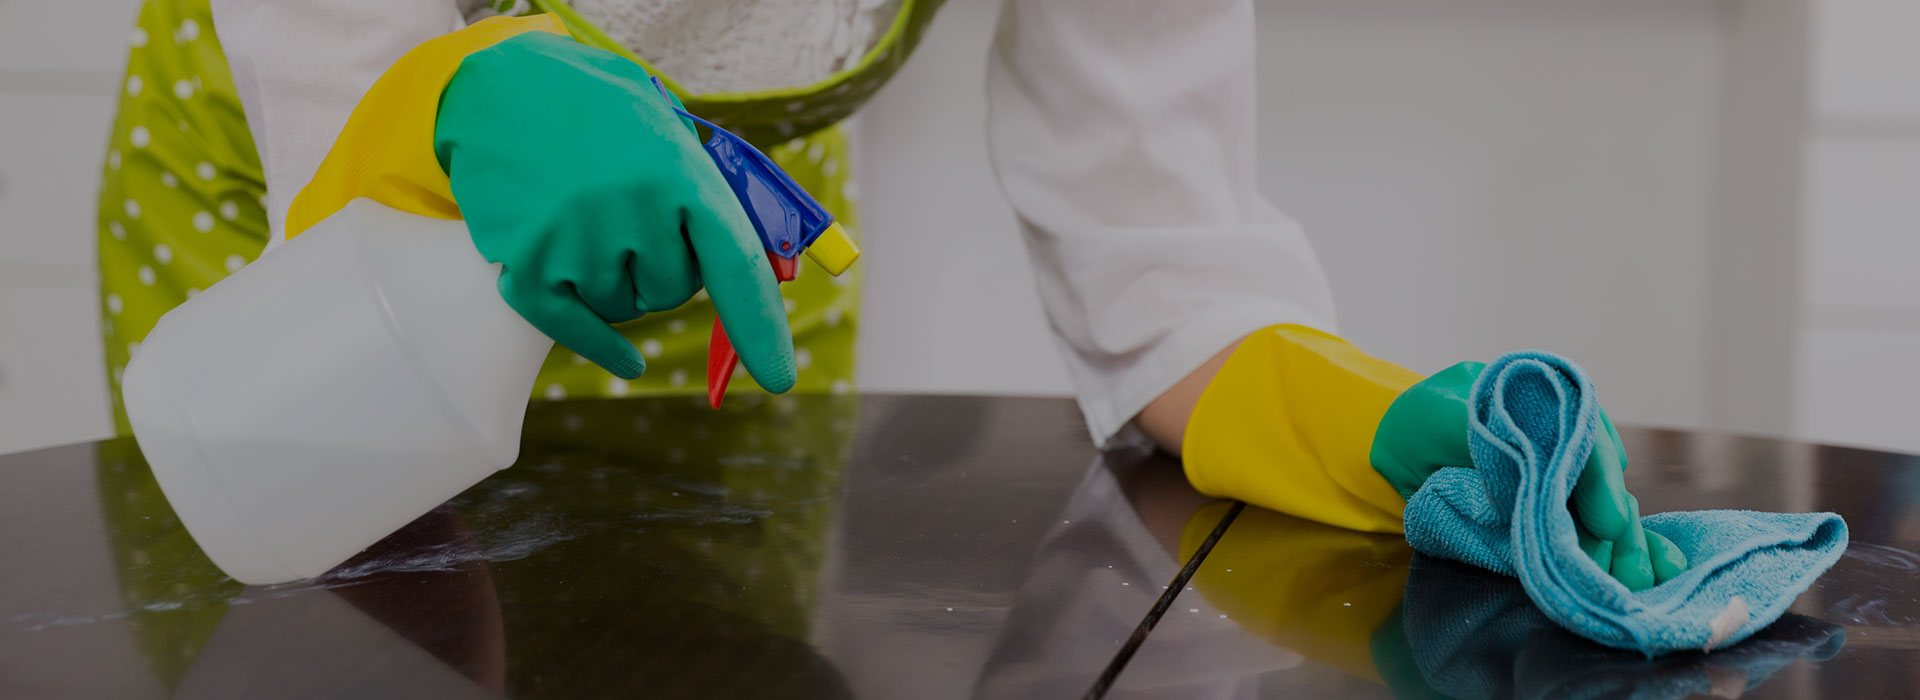 kitchen cleaning services in Gurgaon